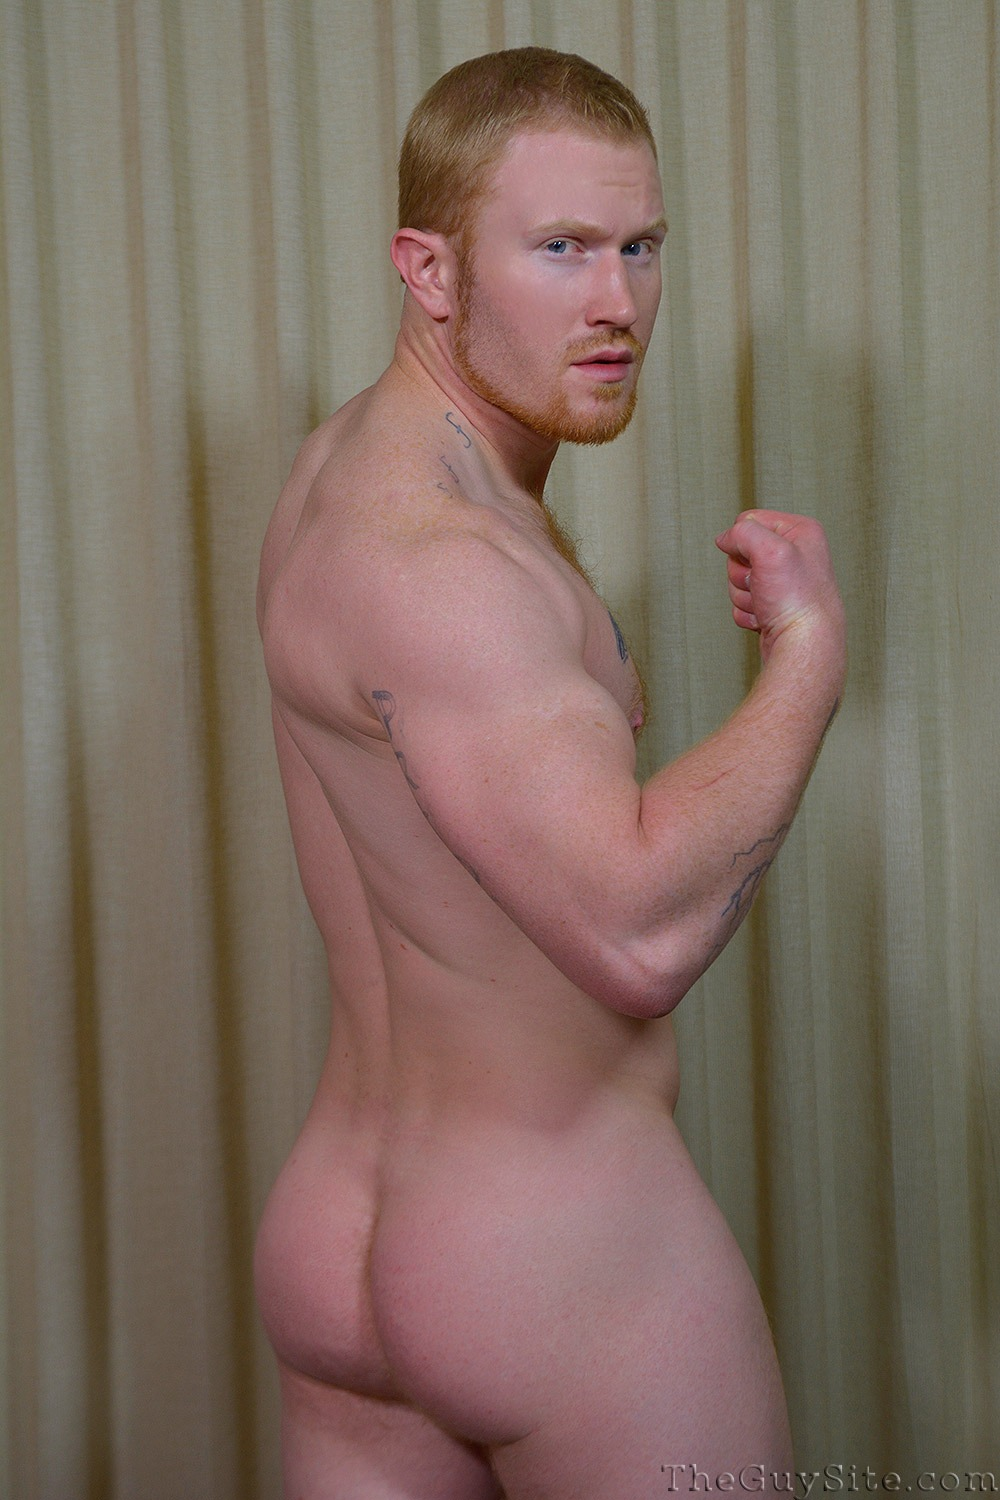 Colby Shows Off His Bubble Ass And Big Dick - Hairy Guys -7119